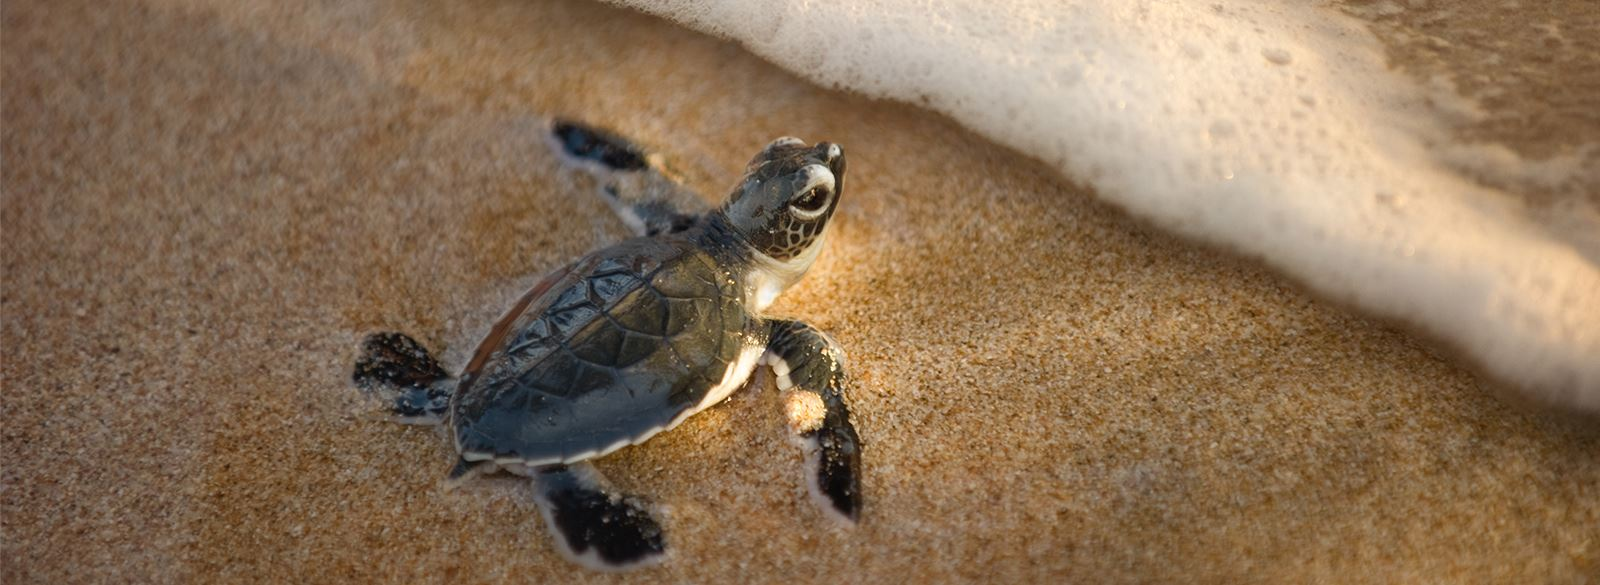 Baby sea turtle on sandy beach